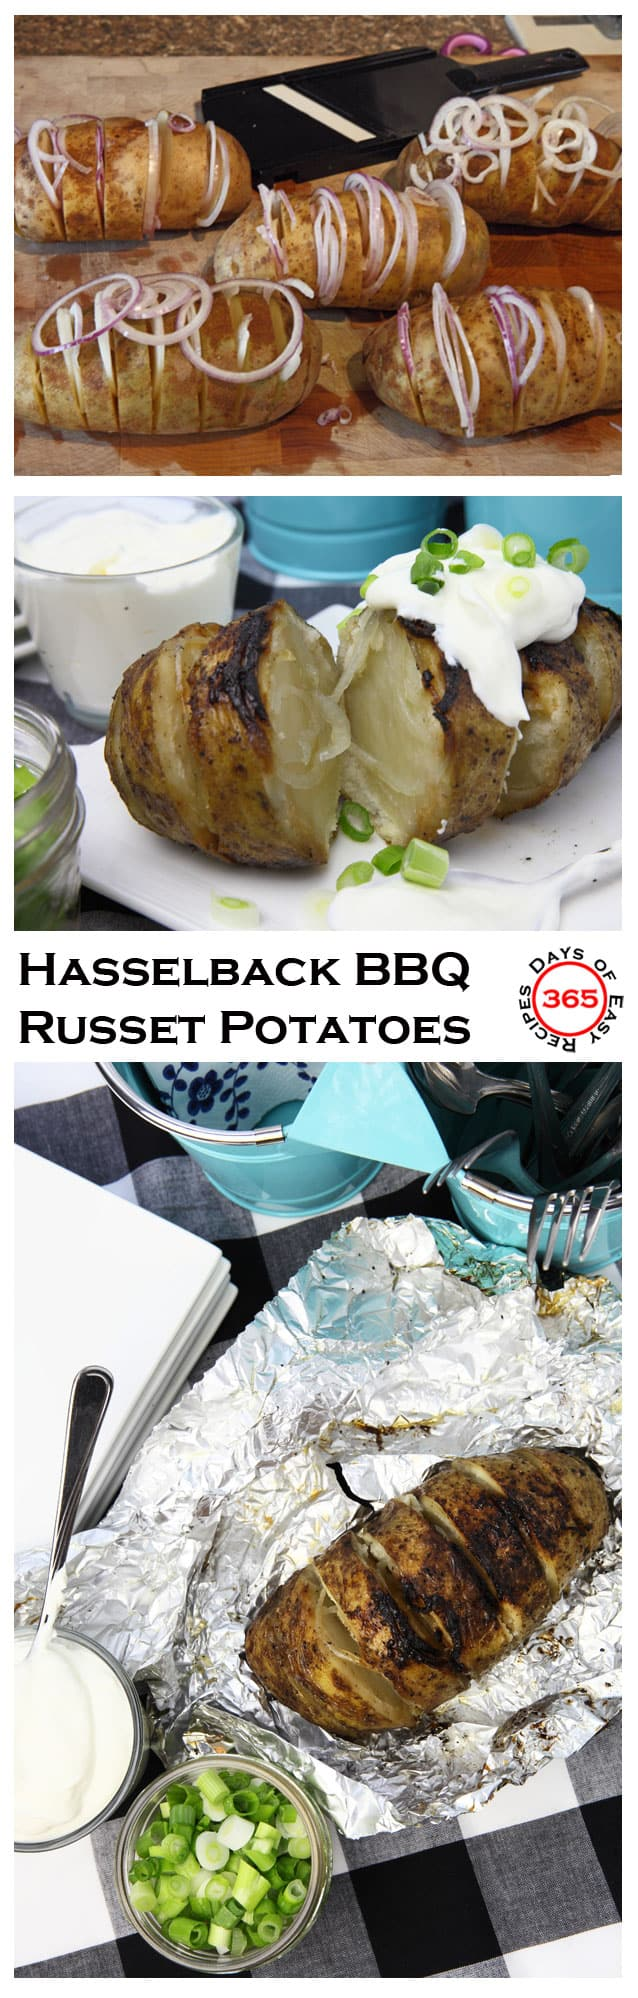 Plan a Baked Potato Bar for your next backyard BBQ and serve up these fun Hasselback BBQ Russet Potatoes